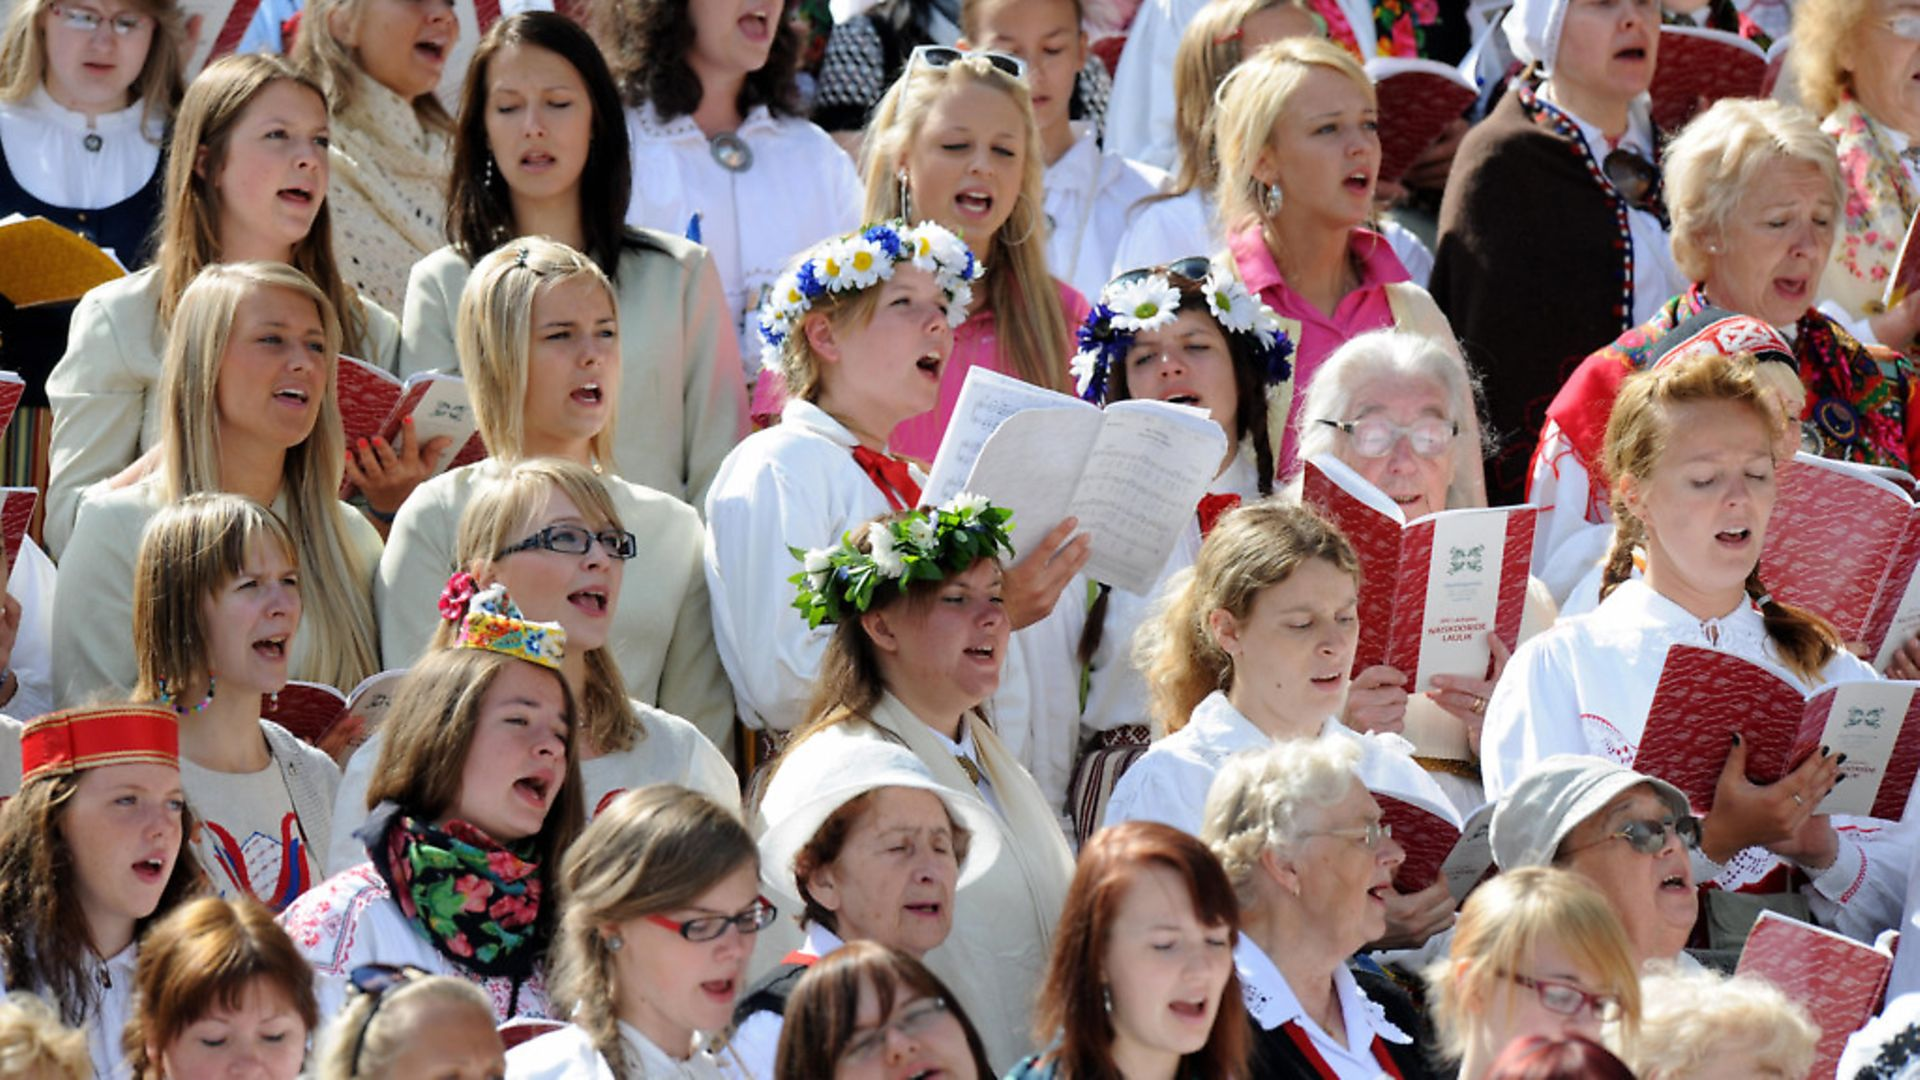 """""""To Breathe as One"""" festival in Tallinn reunits tens of thousands of Estonians that sing in huge choirs over the weekend as the Baltic nations host traditional song and dance festivals. (Photo: RAIGO PAJULA/AFP/Getty Images) - Credit: AFP/Getty Images"""